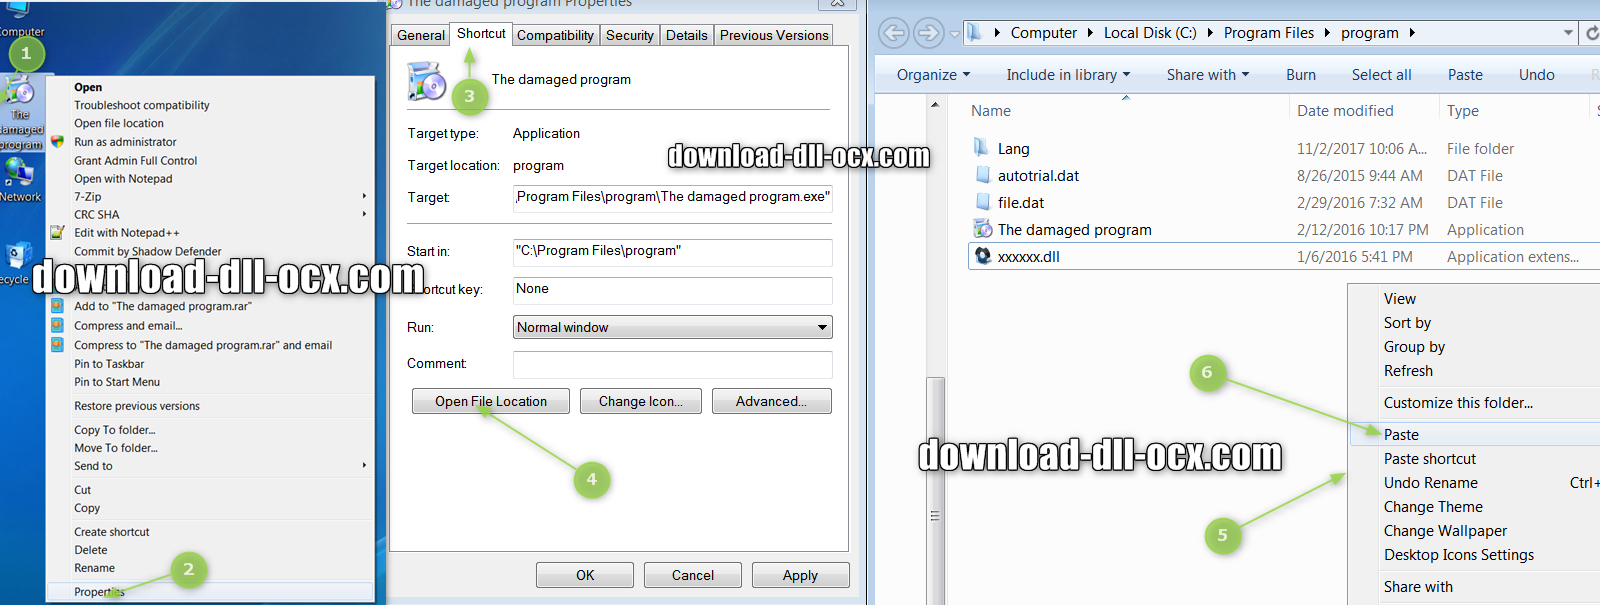 how to install Ioncube_loader_win_5.2.dll file? for fix missing